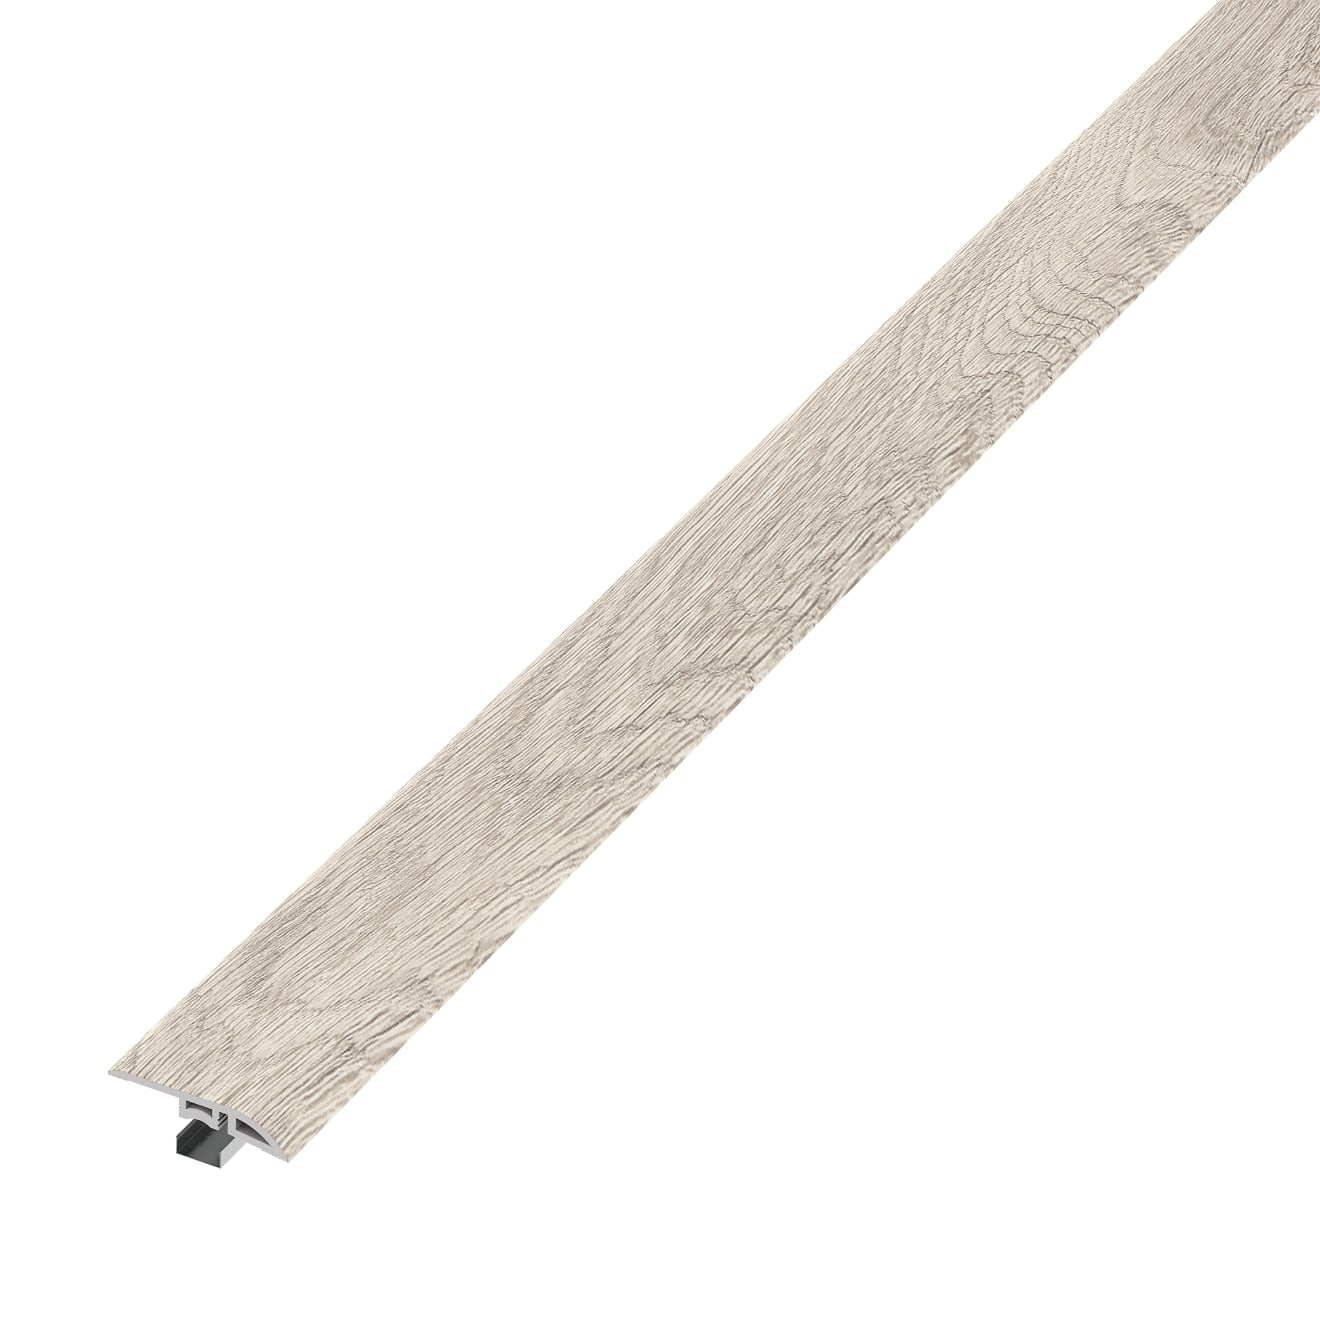 Cassio Luxury SPC Vinyl Reducer Molding Trim in Beige